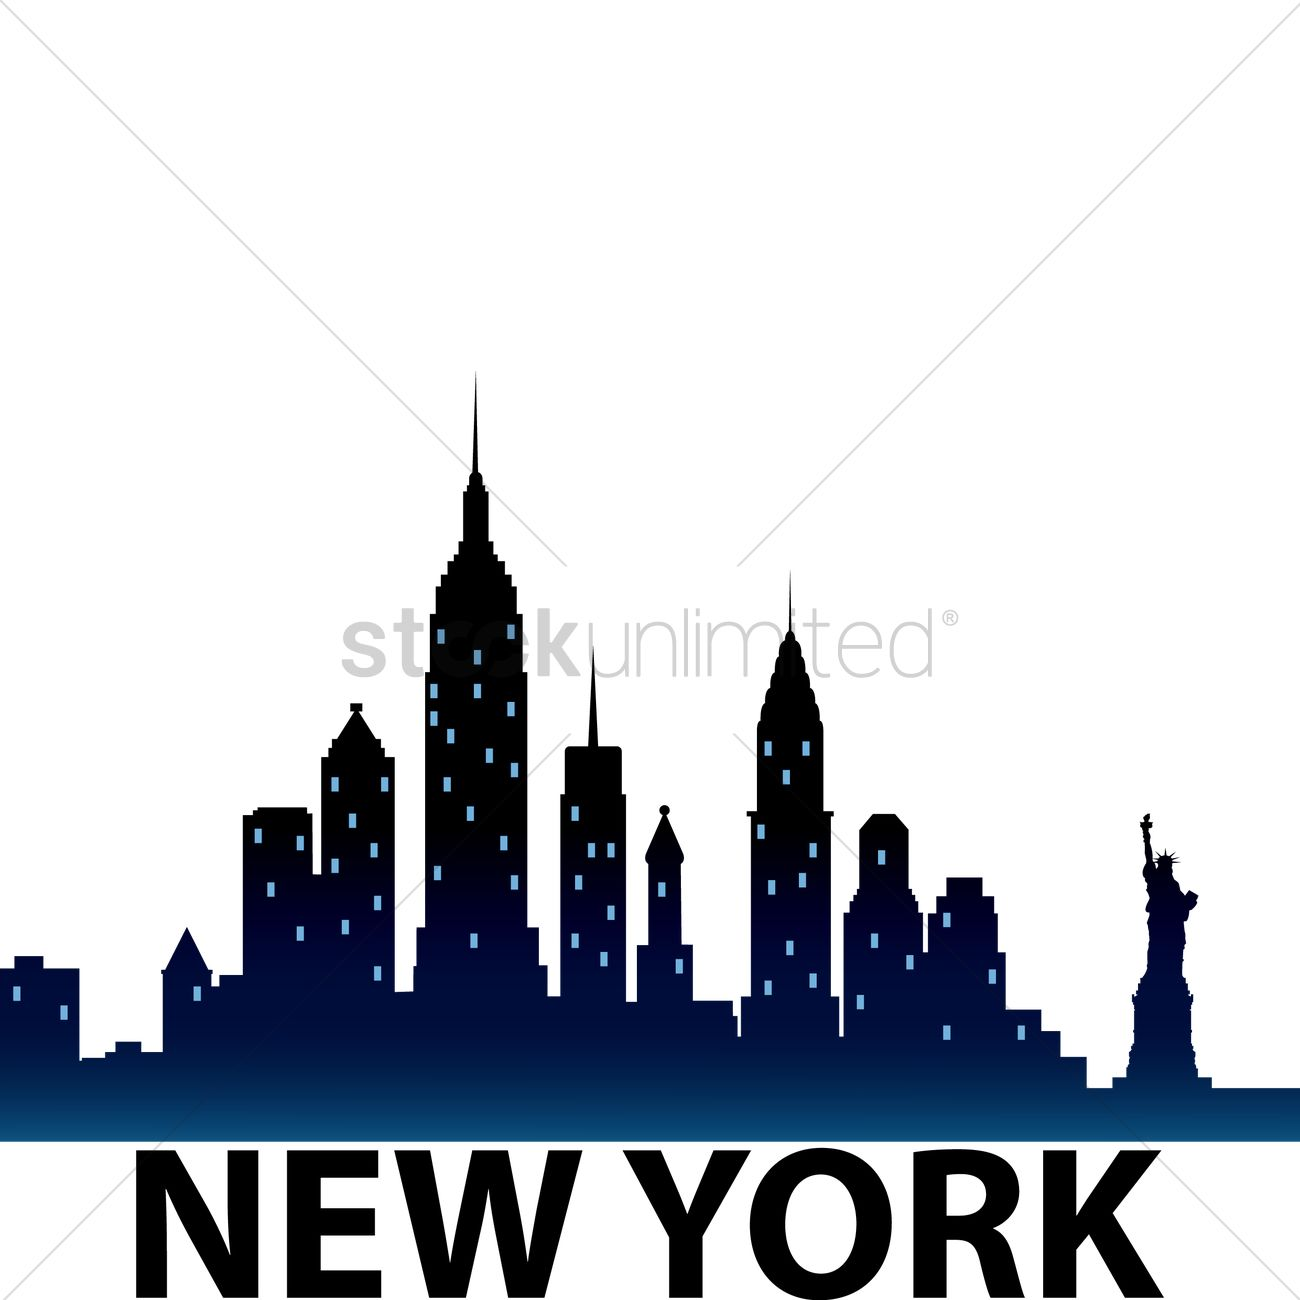 new york city skyline silhouette vector image 1515562 stockunlimited rh stockunlimited com nyc skyline vector free nyc skyline vector art free